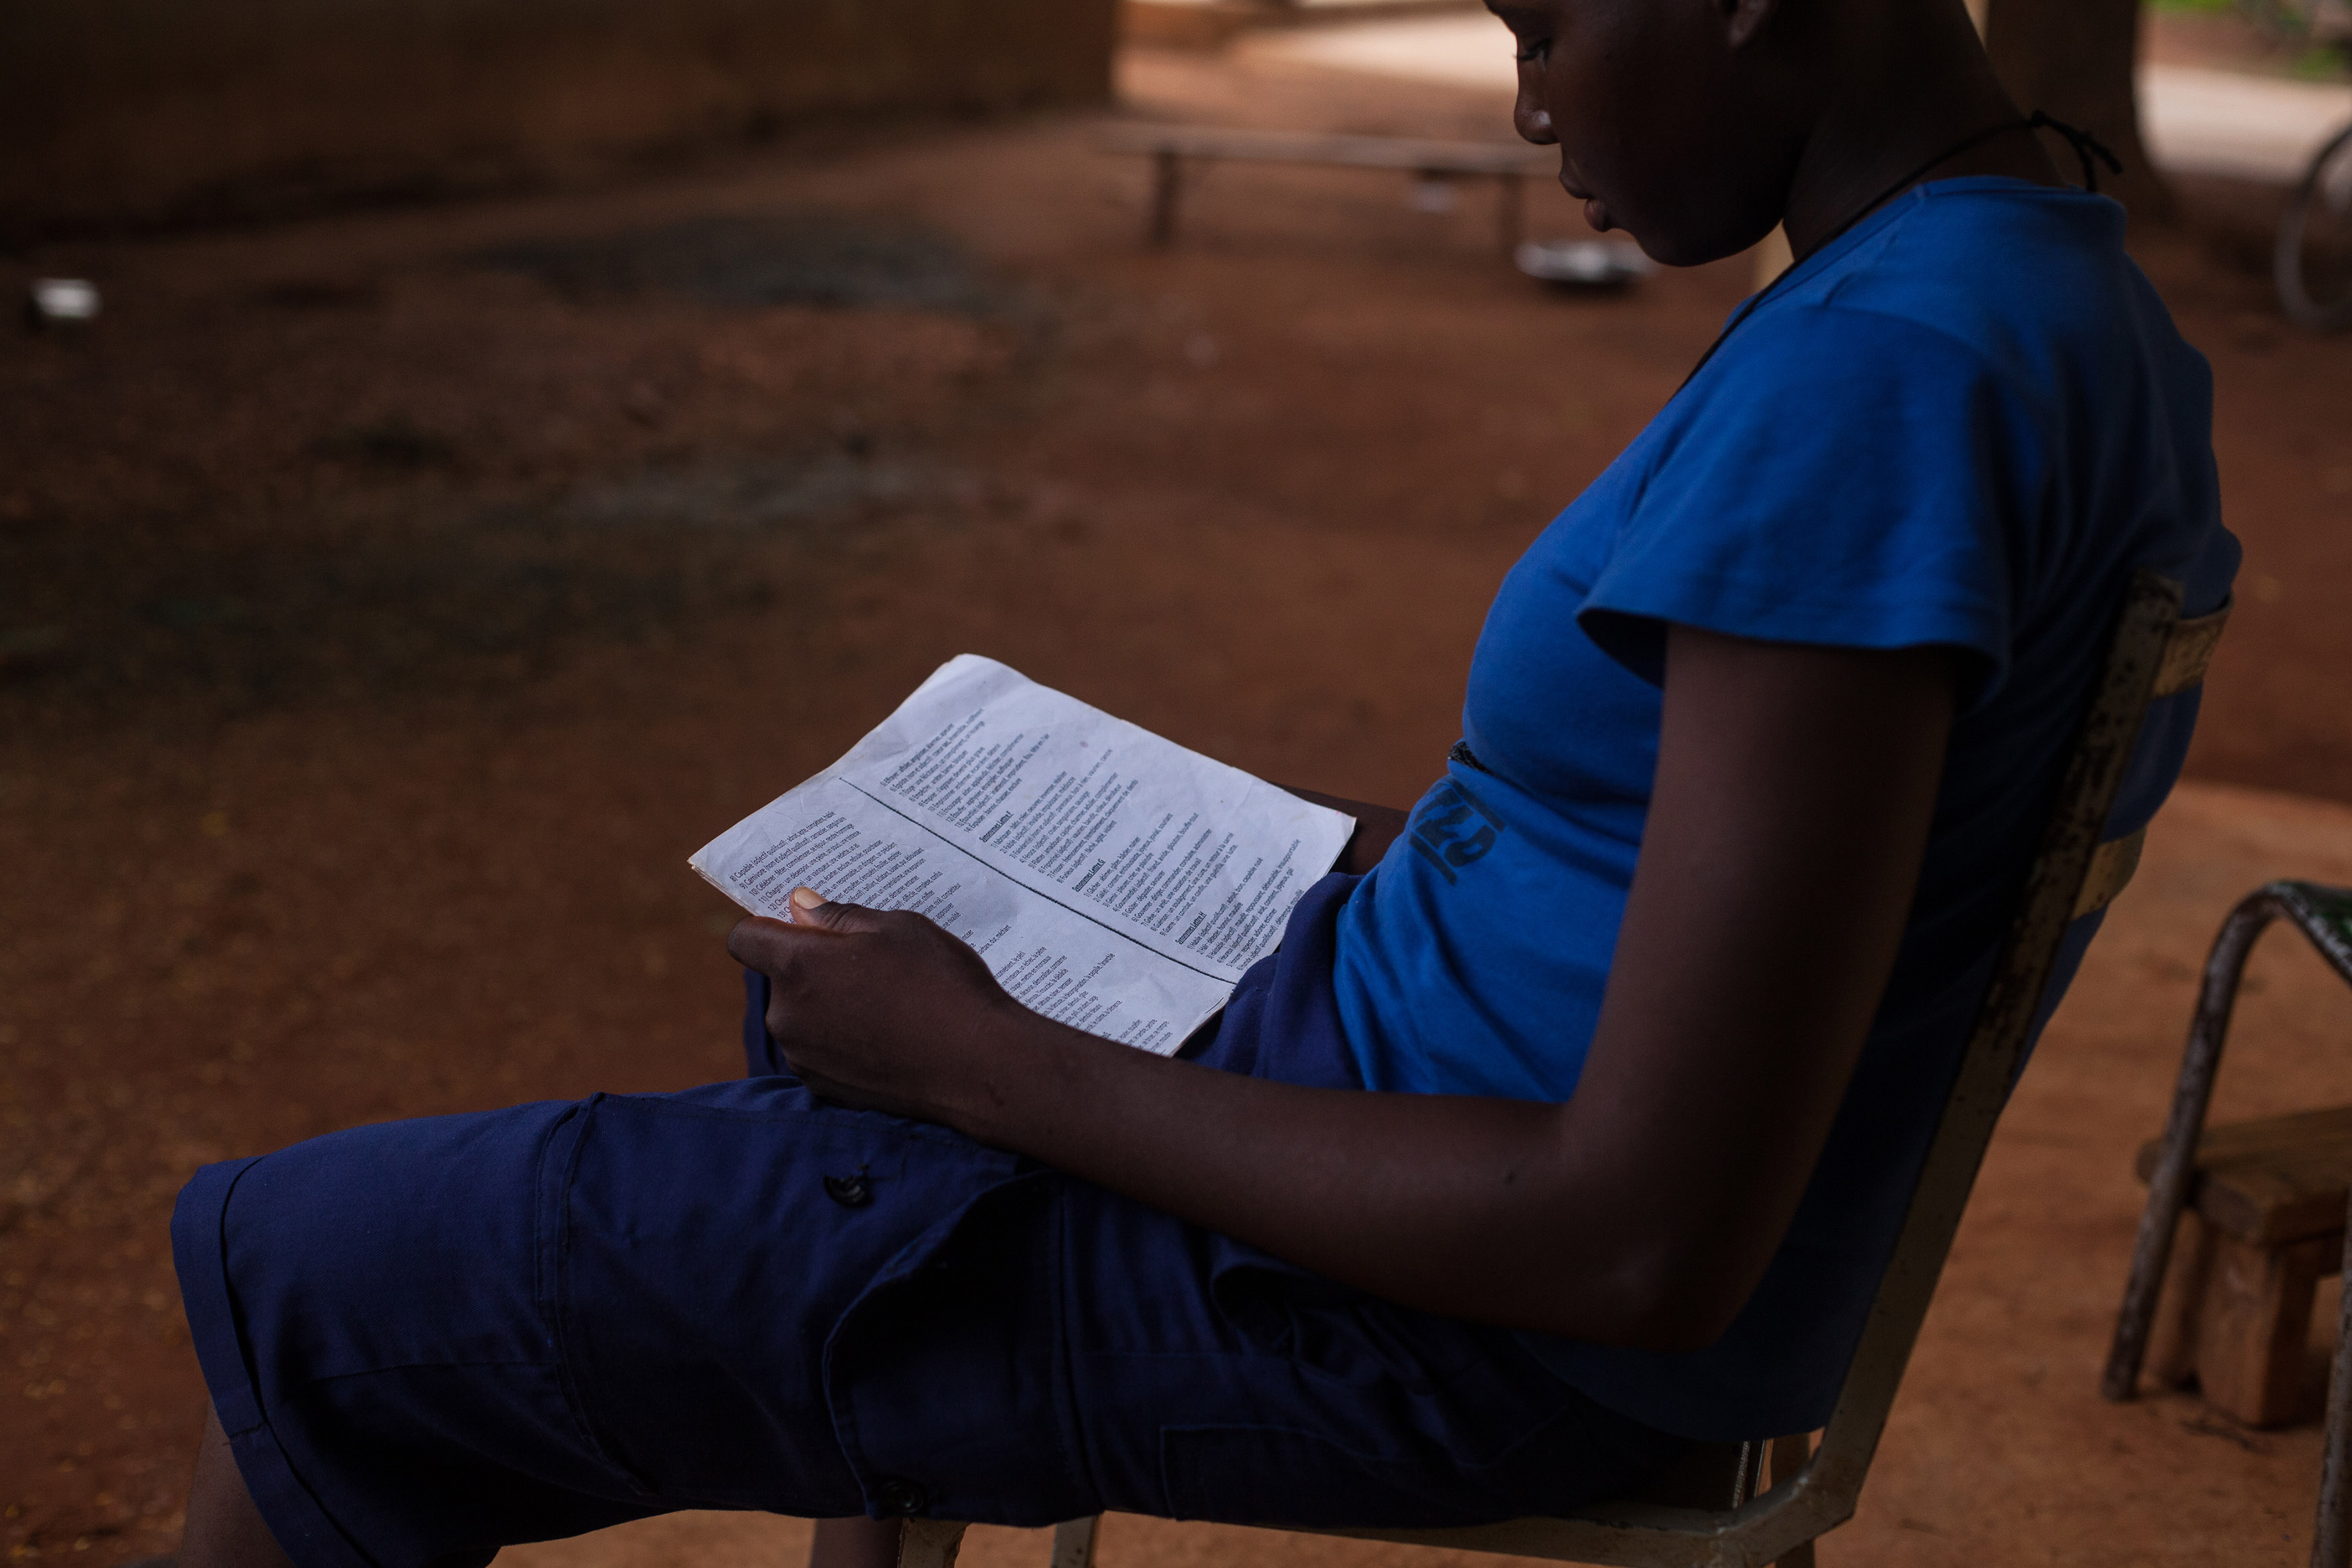 For most girls, early marriage means losing out on their education, but at this shelter for survivors of forced marriage in Kaya city, Burkina Faso, girls are encouraged to continue their education.